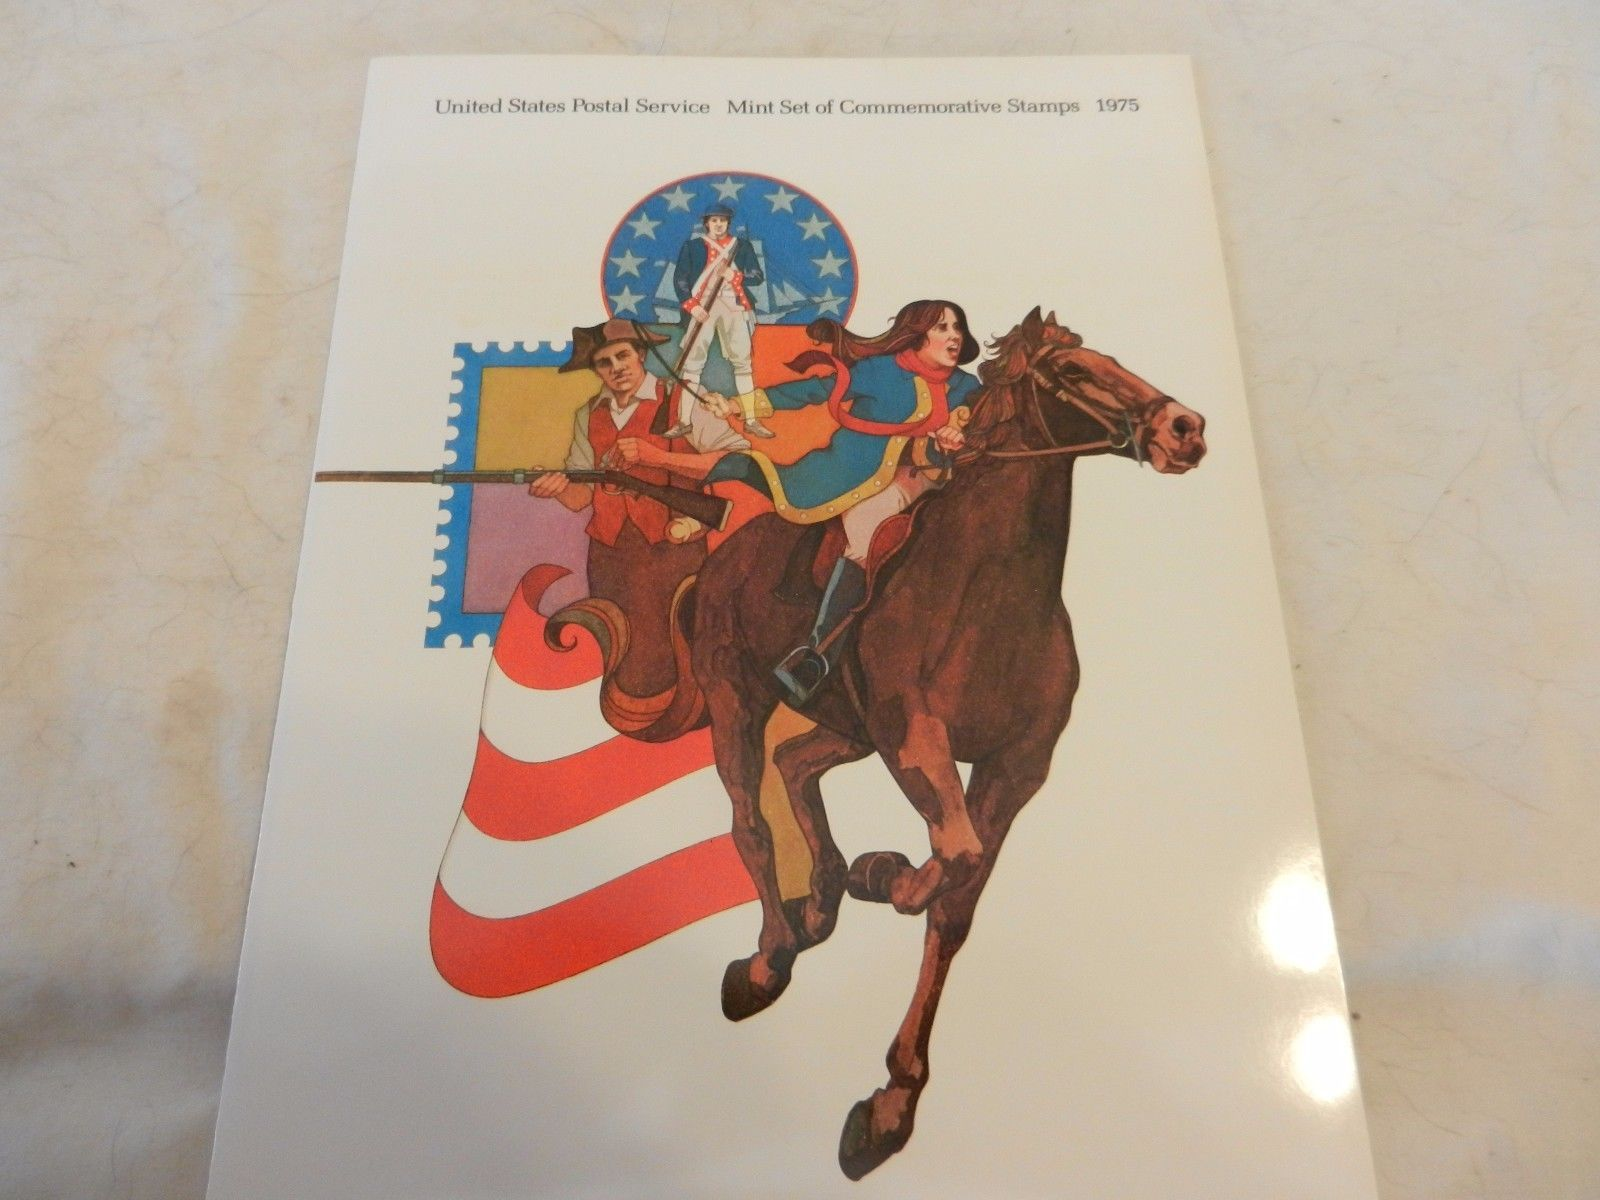 1975 USPS Mint Set of Commemorative Stamps Book Only no stamps